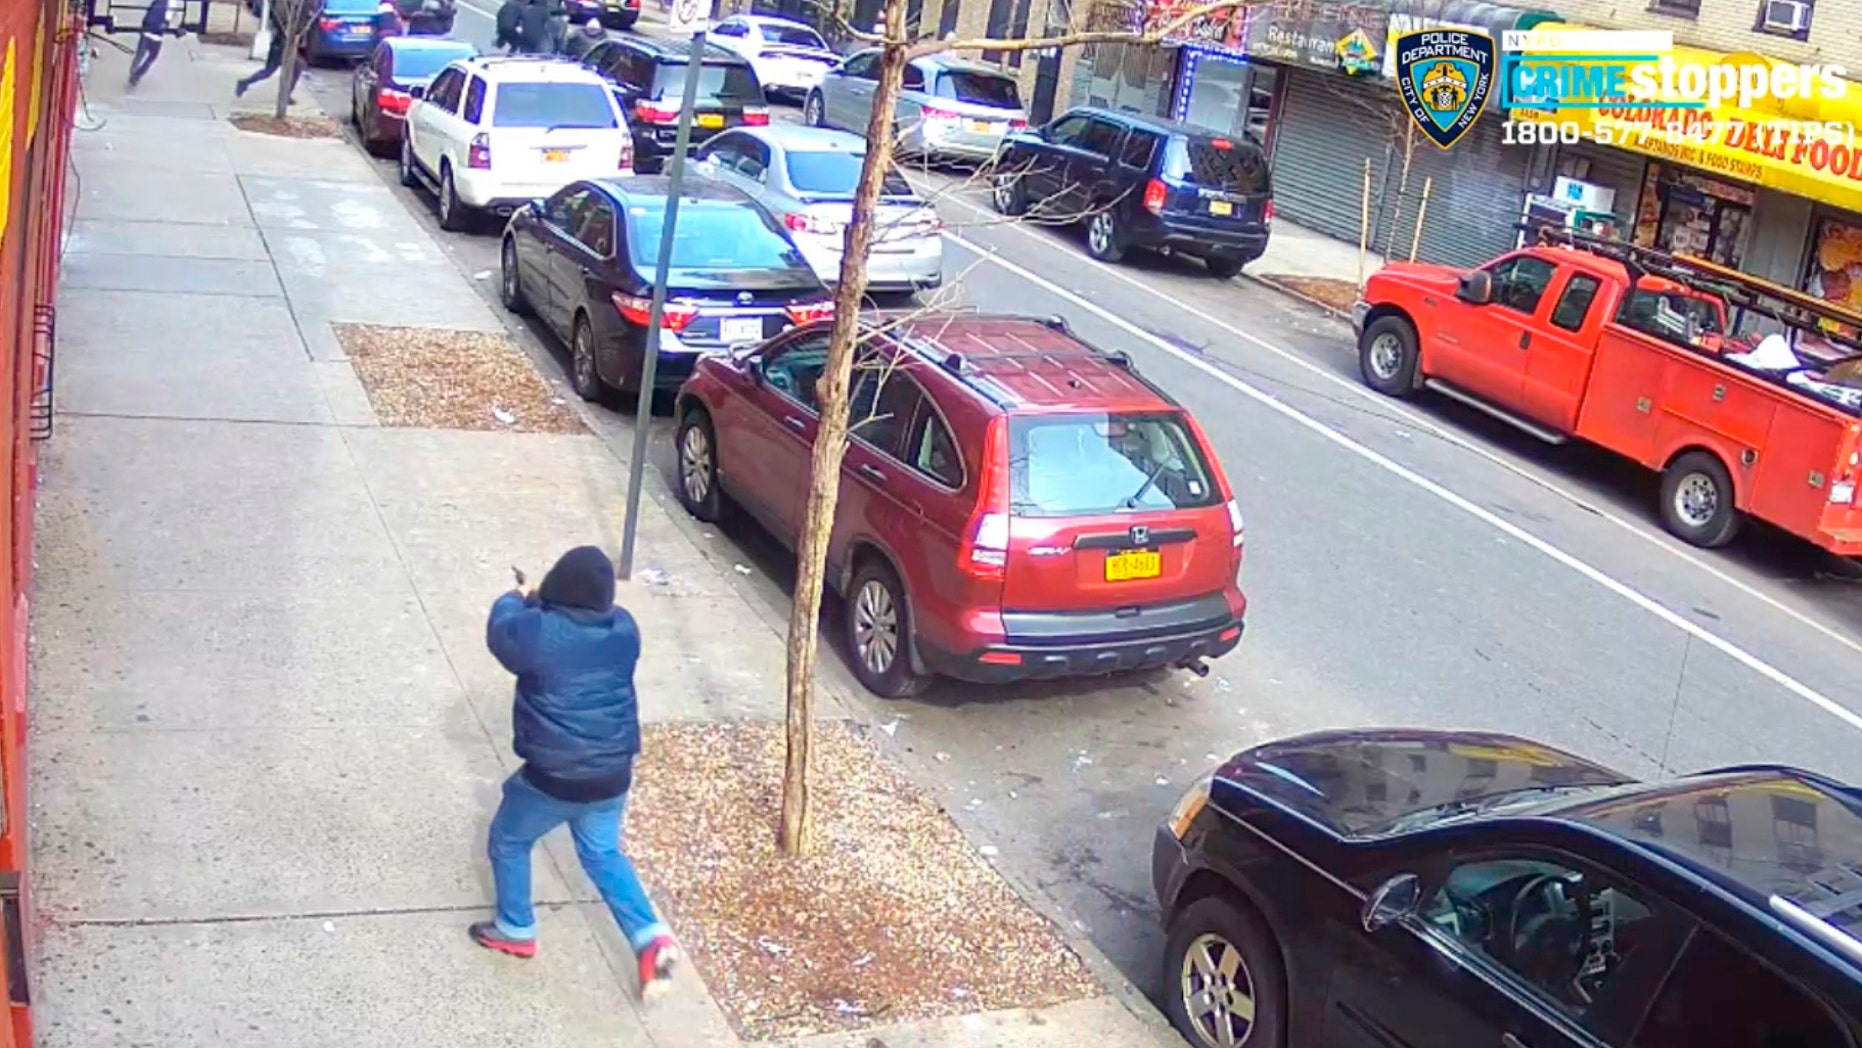 In this Feb. 22, 2019 image taken from surveillance video released by the New York City Police Department, a gunman identified by the NYPD as 16-year-old Edgar Garcia opens fire on a crowded street in the Bronx borough of New York. No one was hit by the gunfire. (New York City Police Department via AP)